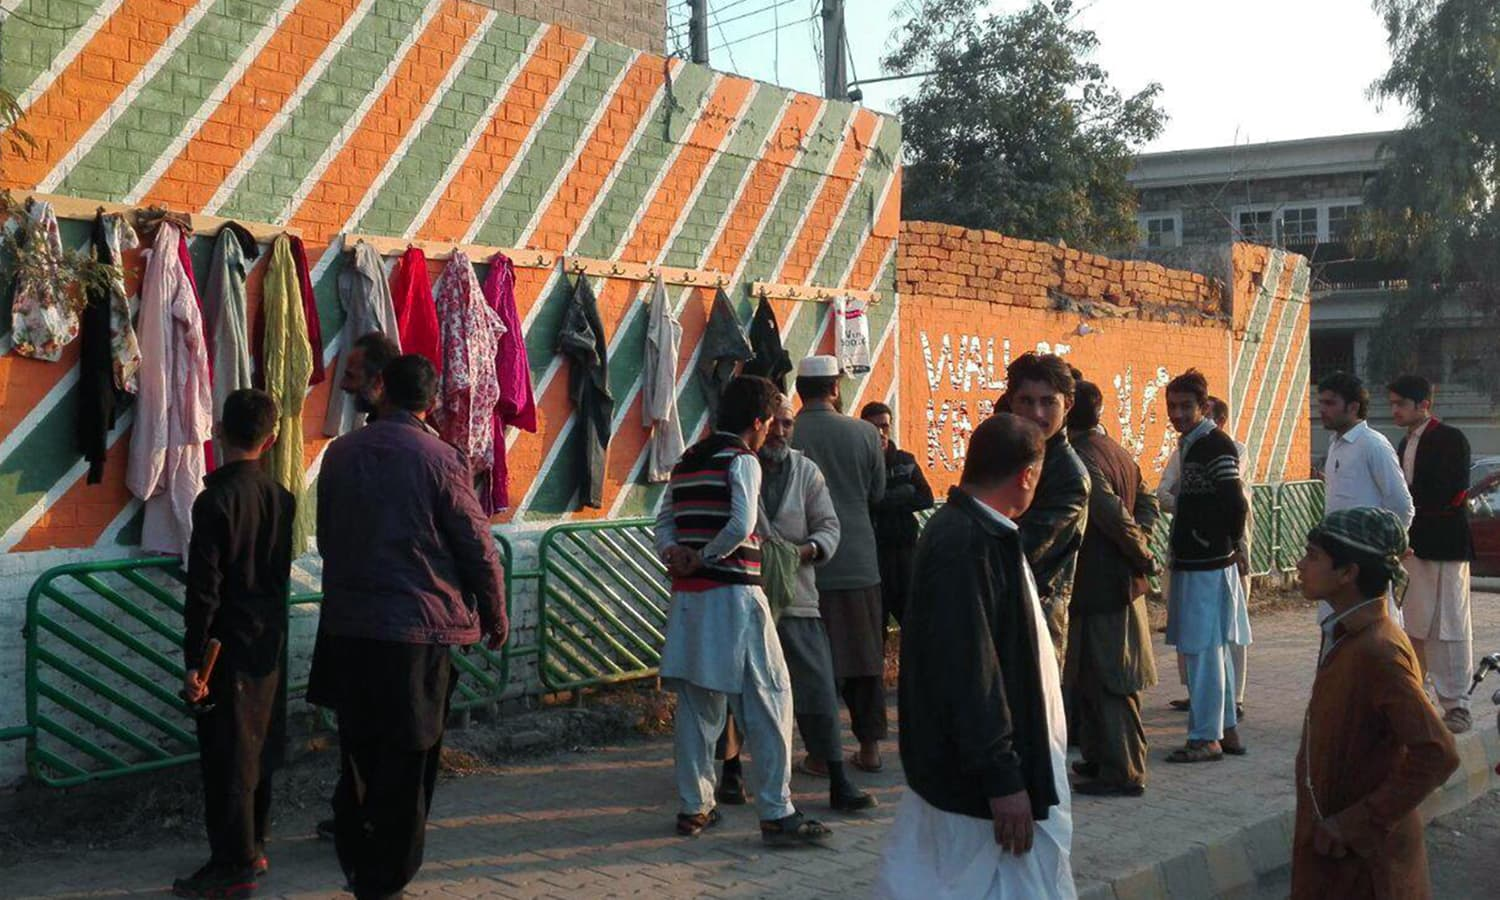 Peshawarites contribute clothes to the Wall of Kindness. — Photo by Asad Lodhi